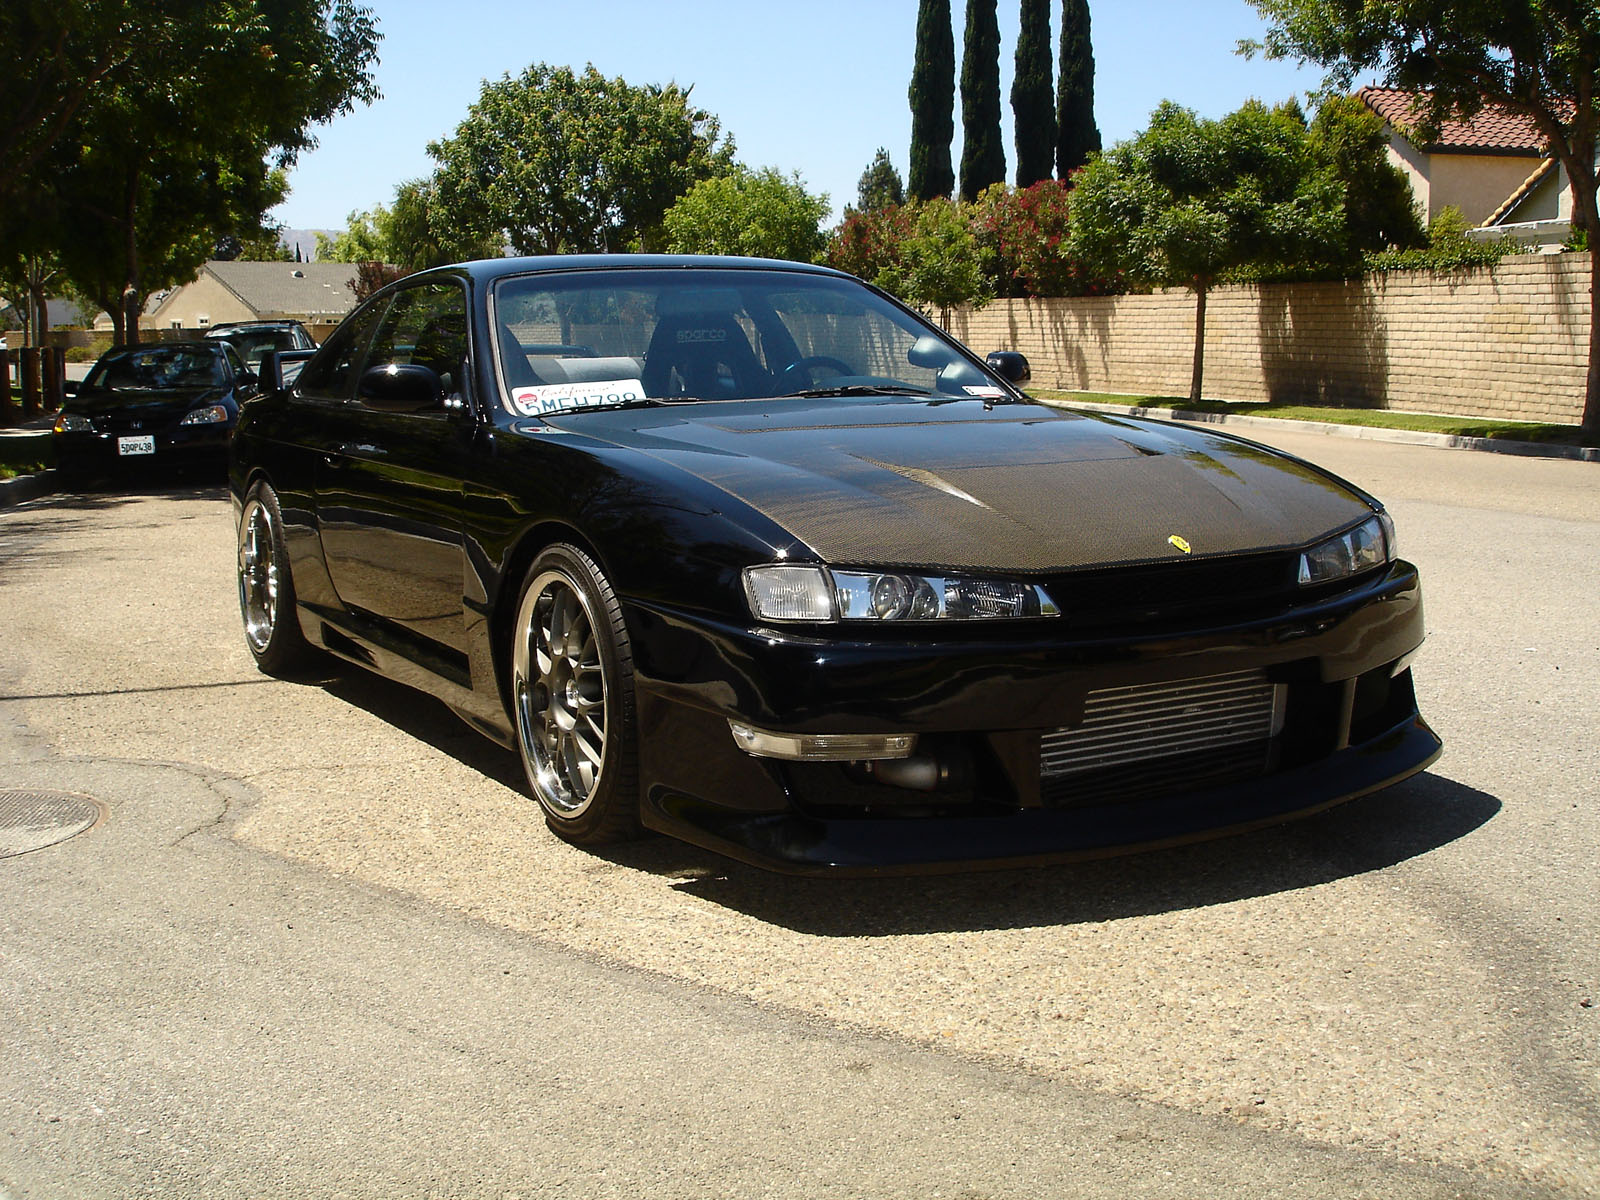 Nissan 240sx silvia conversion for sale for Nissan 240sx motor for sale